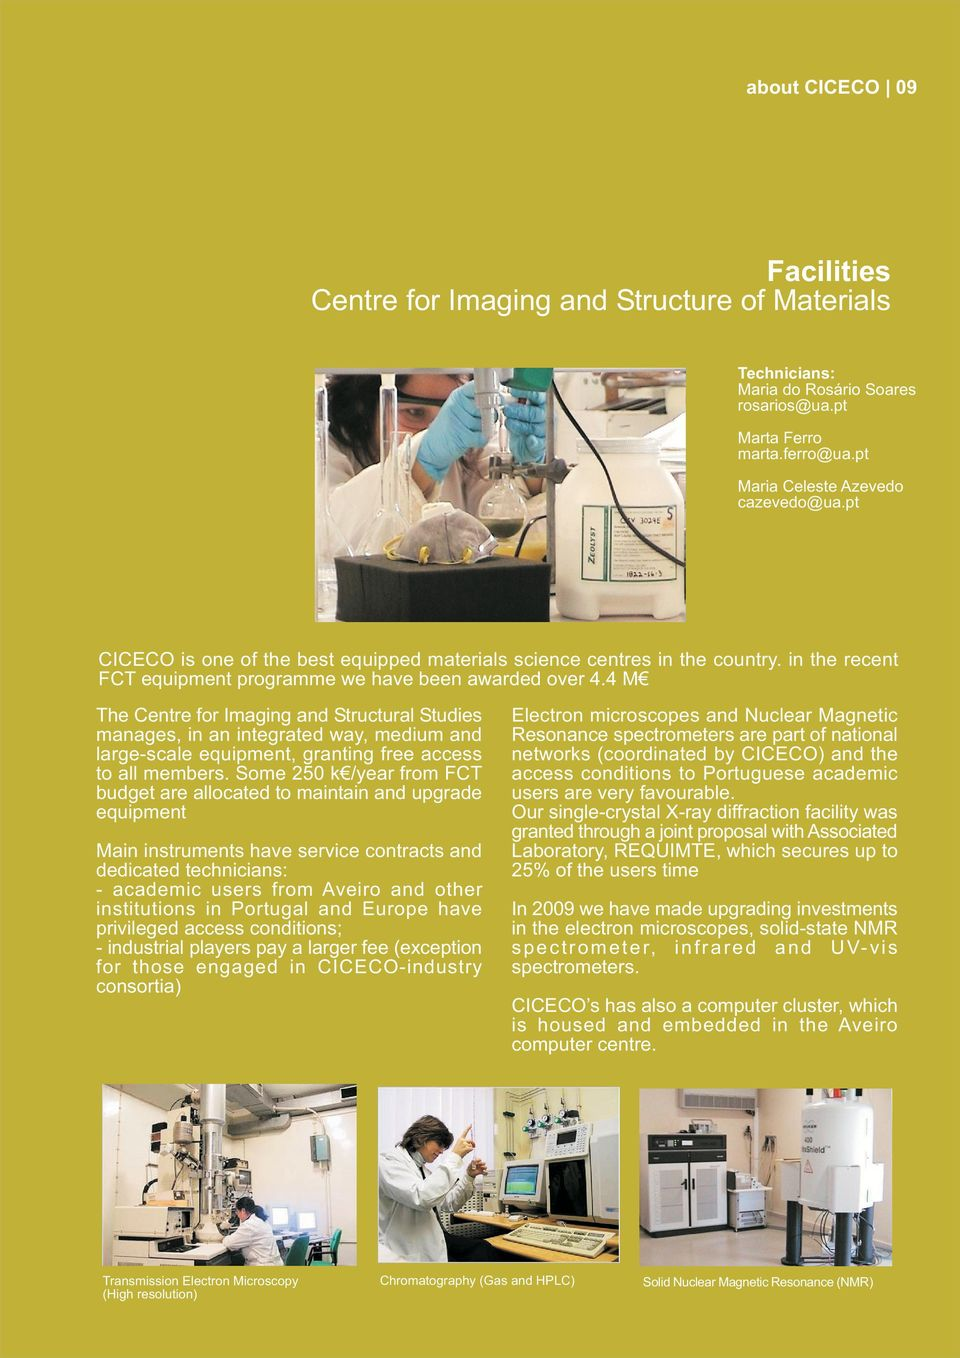 4 M The Centre for Imaging and Structural Studies manages, in an integrated way, medium and large-scale equipment, granting free access to all members.